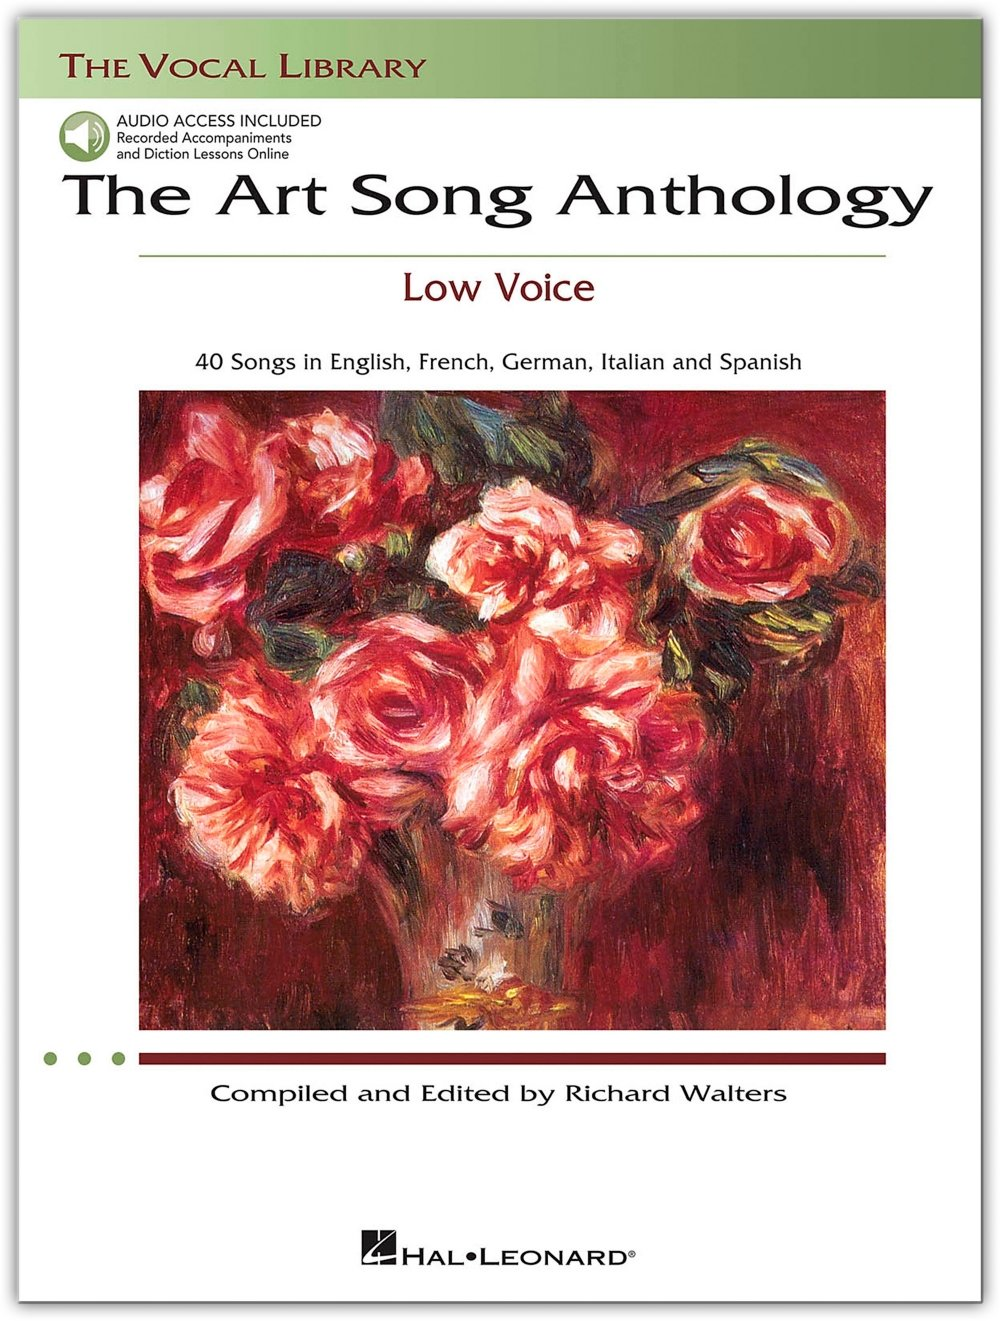 Amazon.com: The Art Song Anthology - Low Voice Songbook and 3 CD Package:  Hal Leonard: Musical Instruments